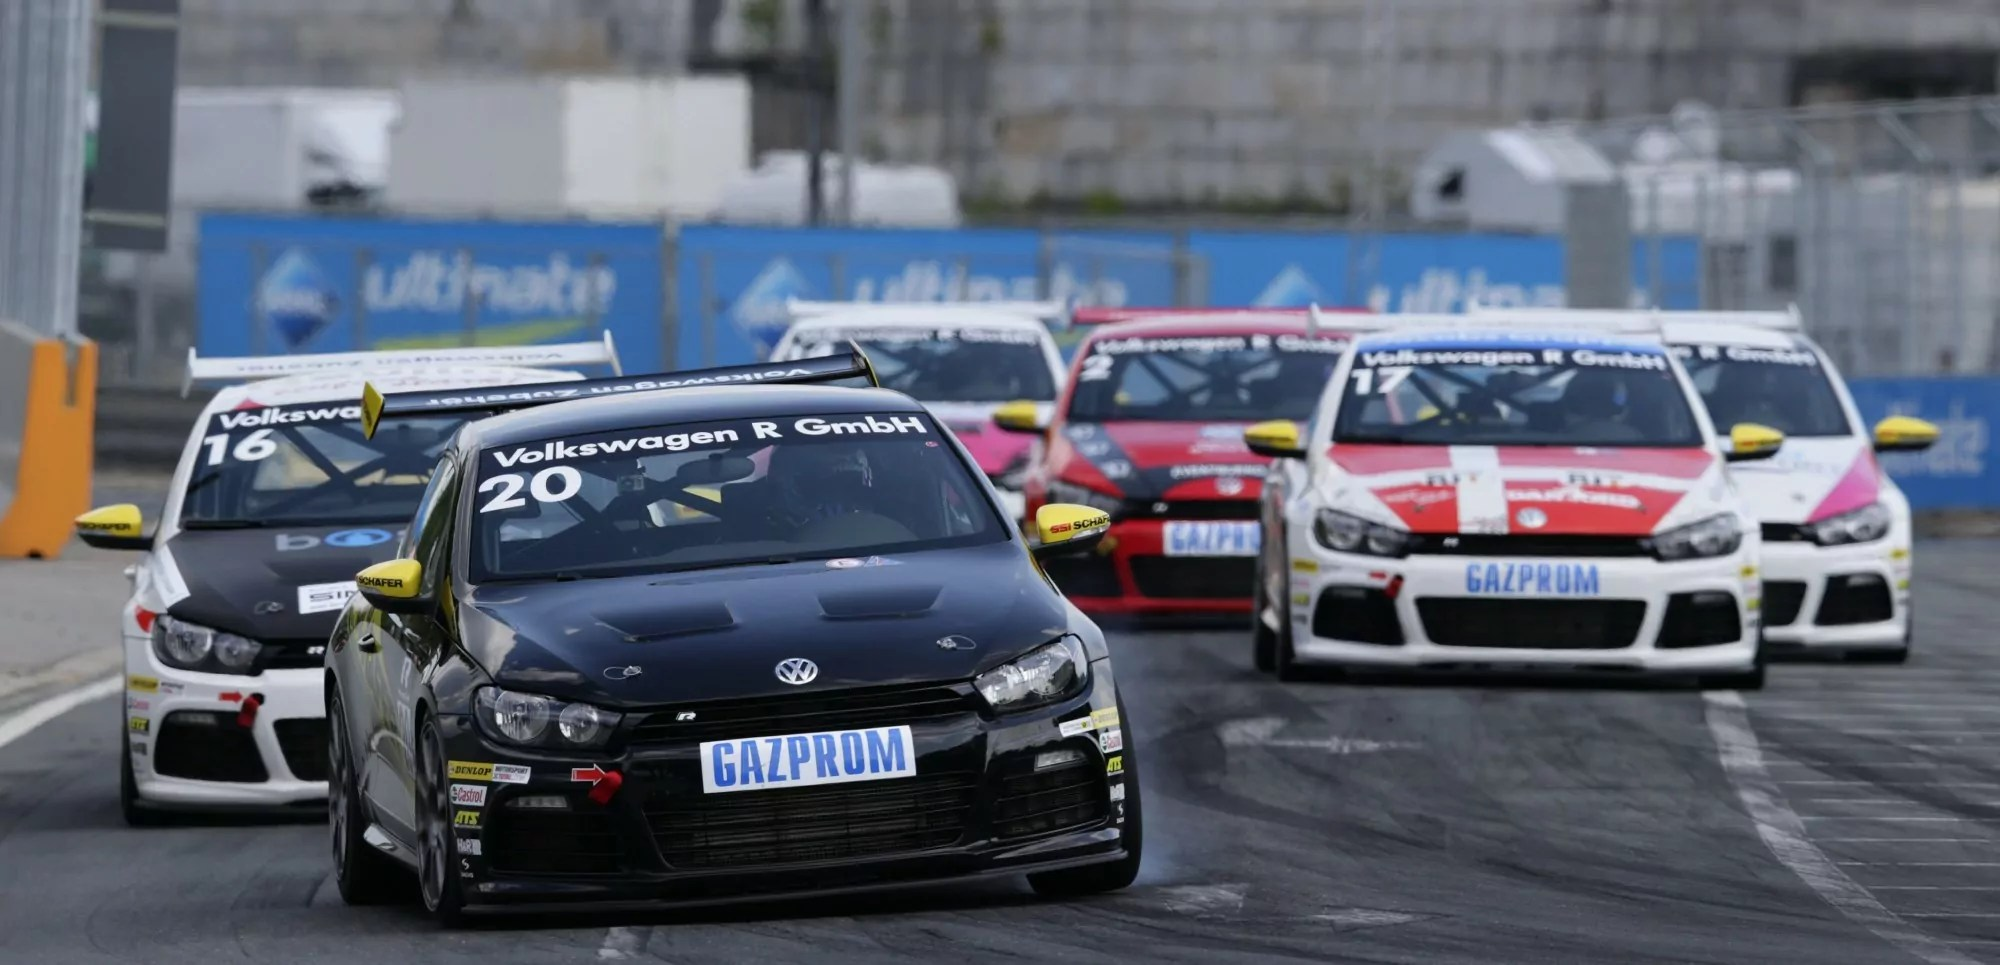 Norisring Race: Van der Linde Steals the Show – Bad luck for Larini.